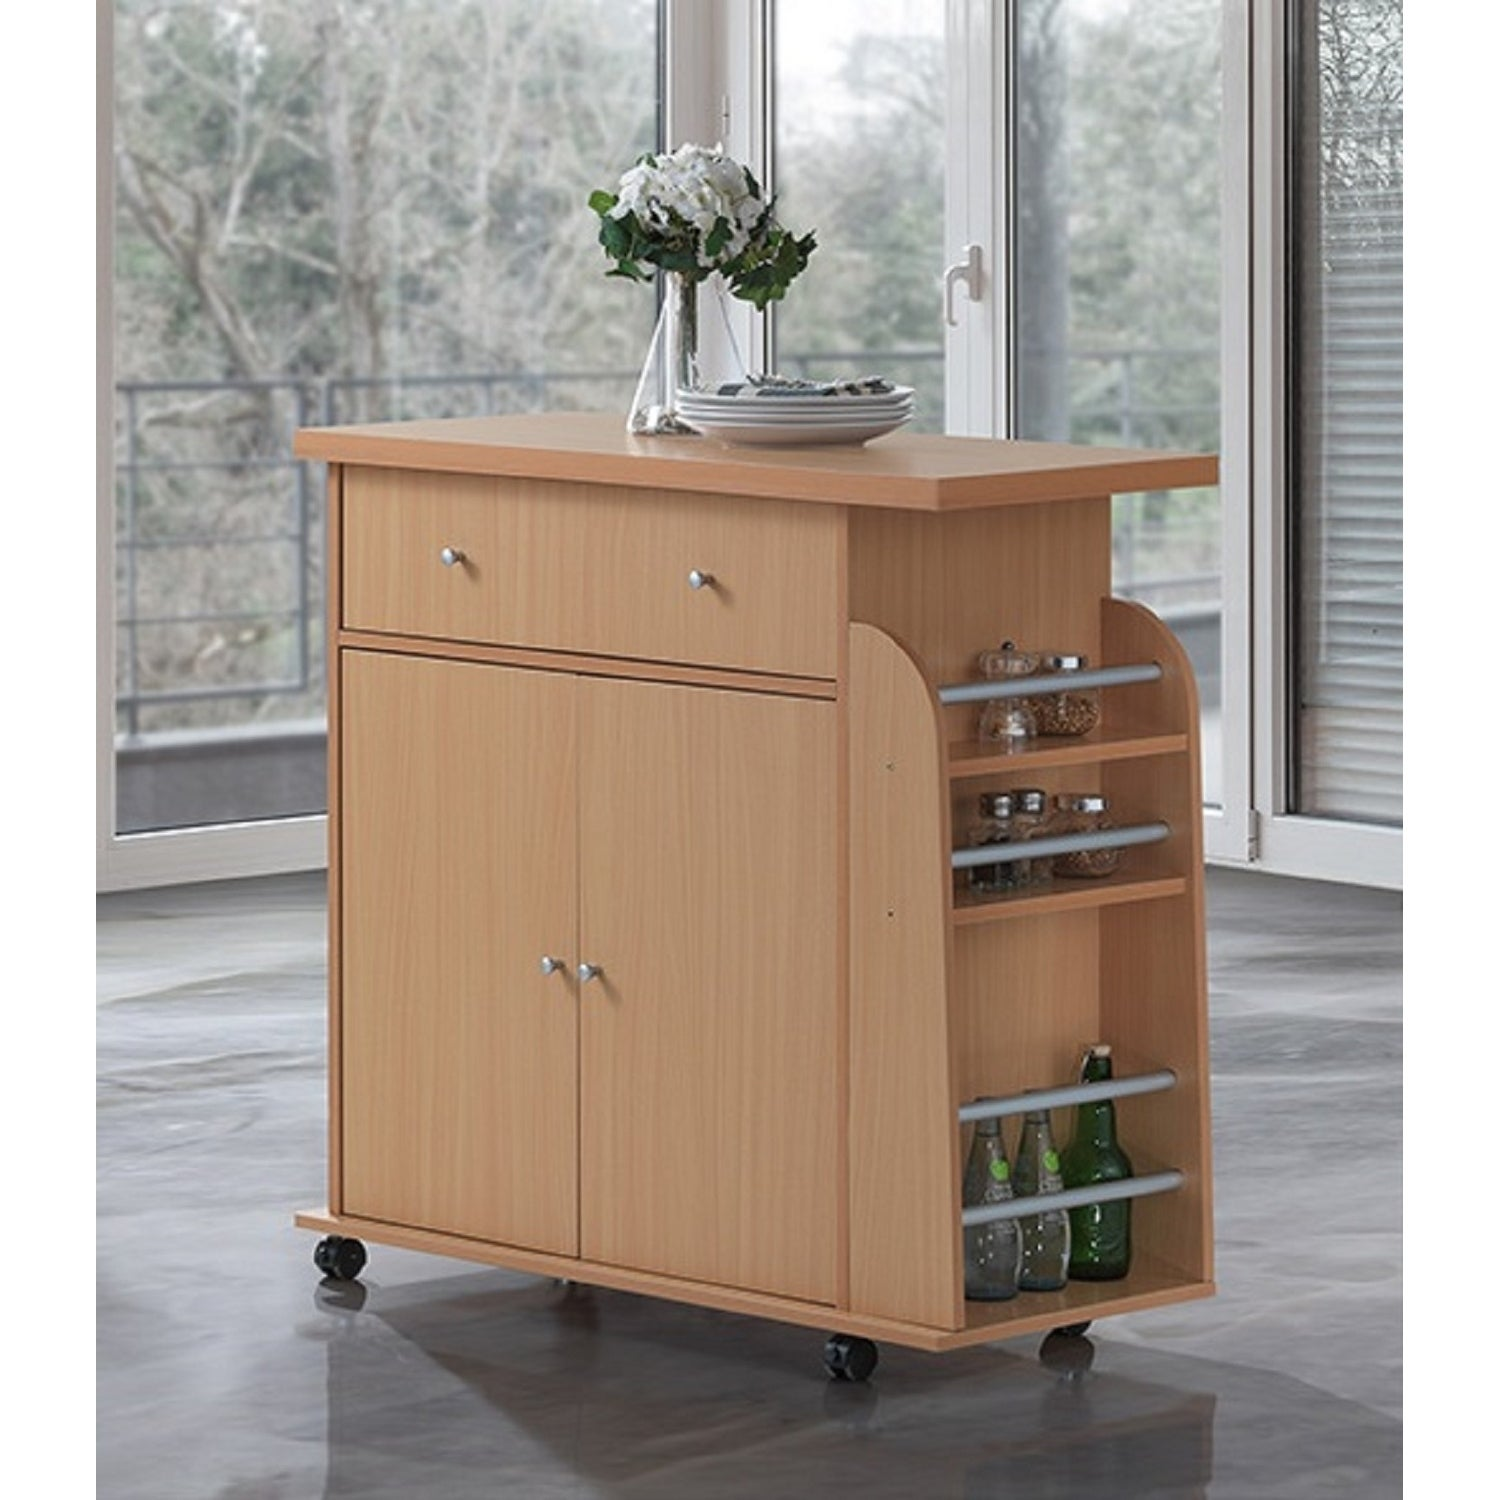 Porch & Den Morgan Modern Mobile Kitchen Island with Spice Rack and Towel  Rack